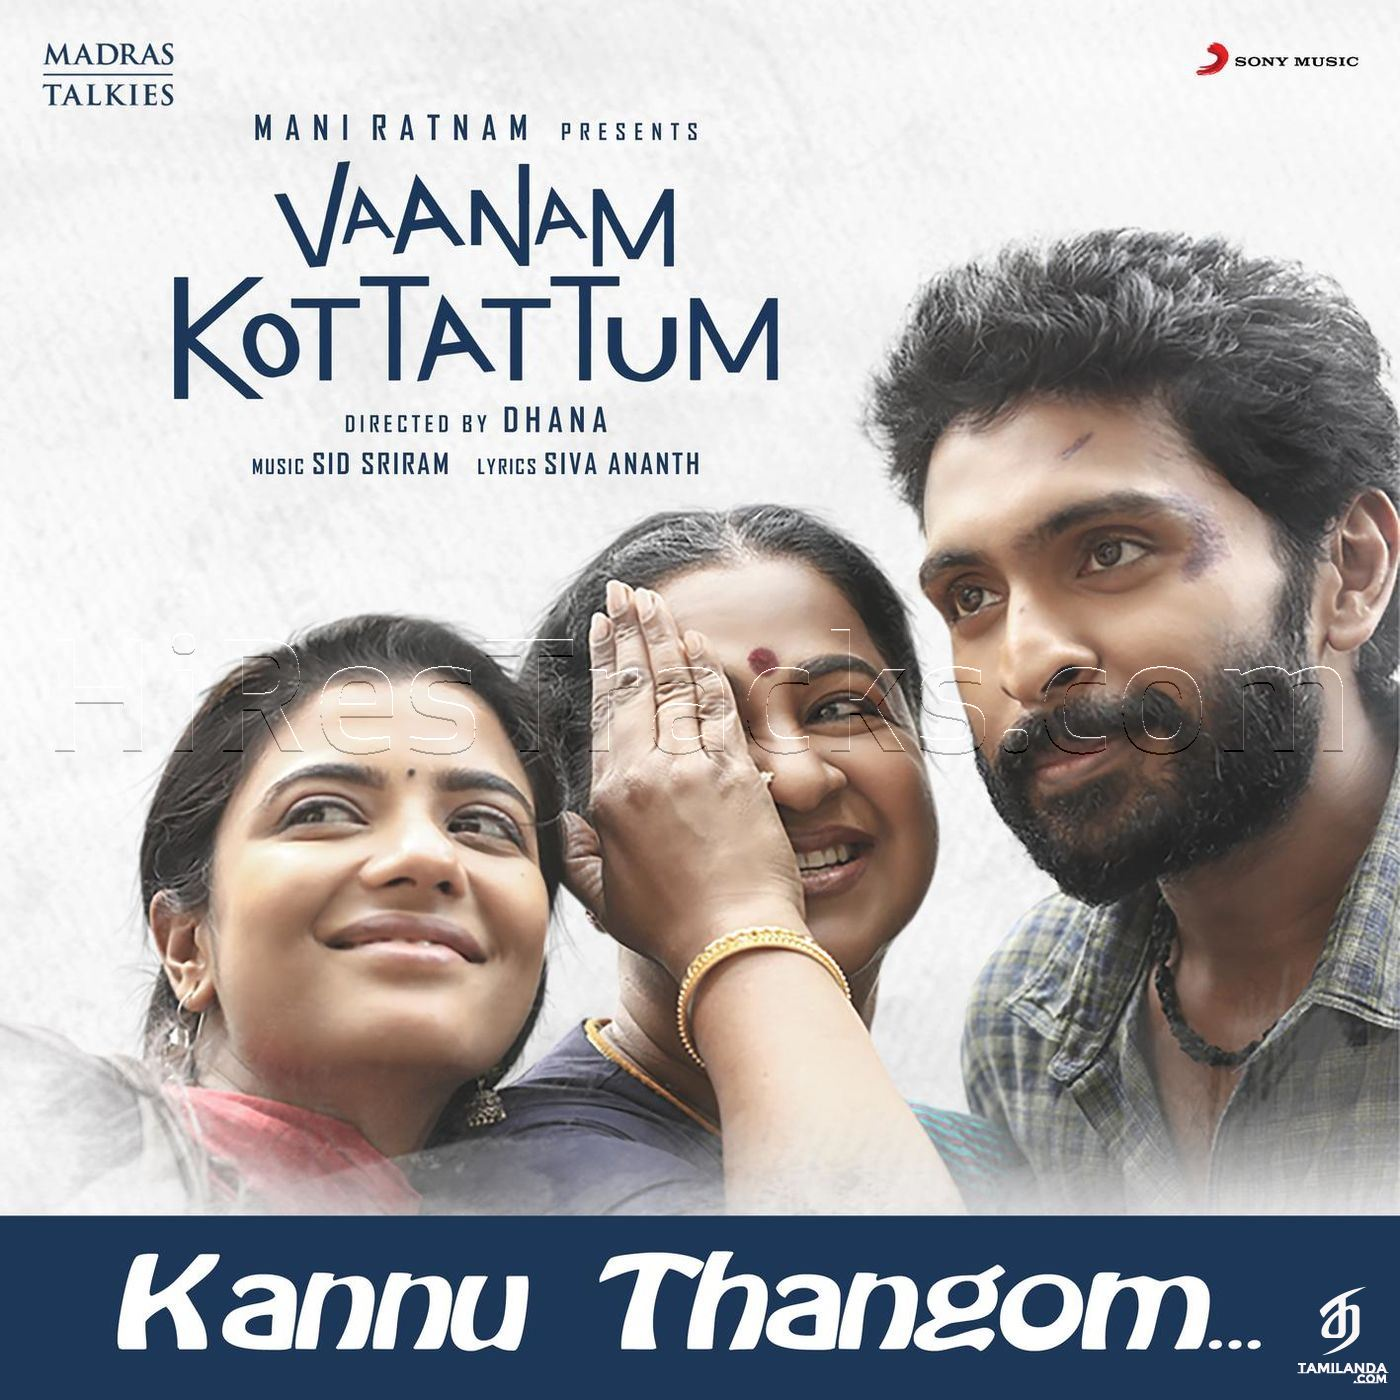 Kannu Thangam (From Vaanam Kottattum) (2019) (Sid Sriram) (Sony Music) [Digital-DL-FLAC]